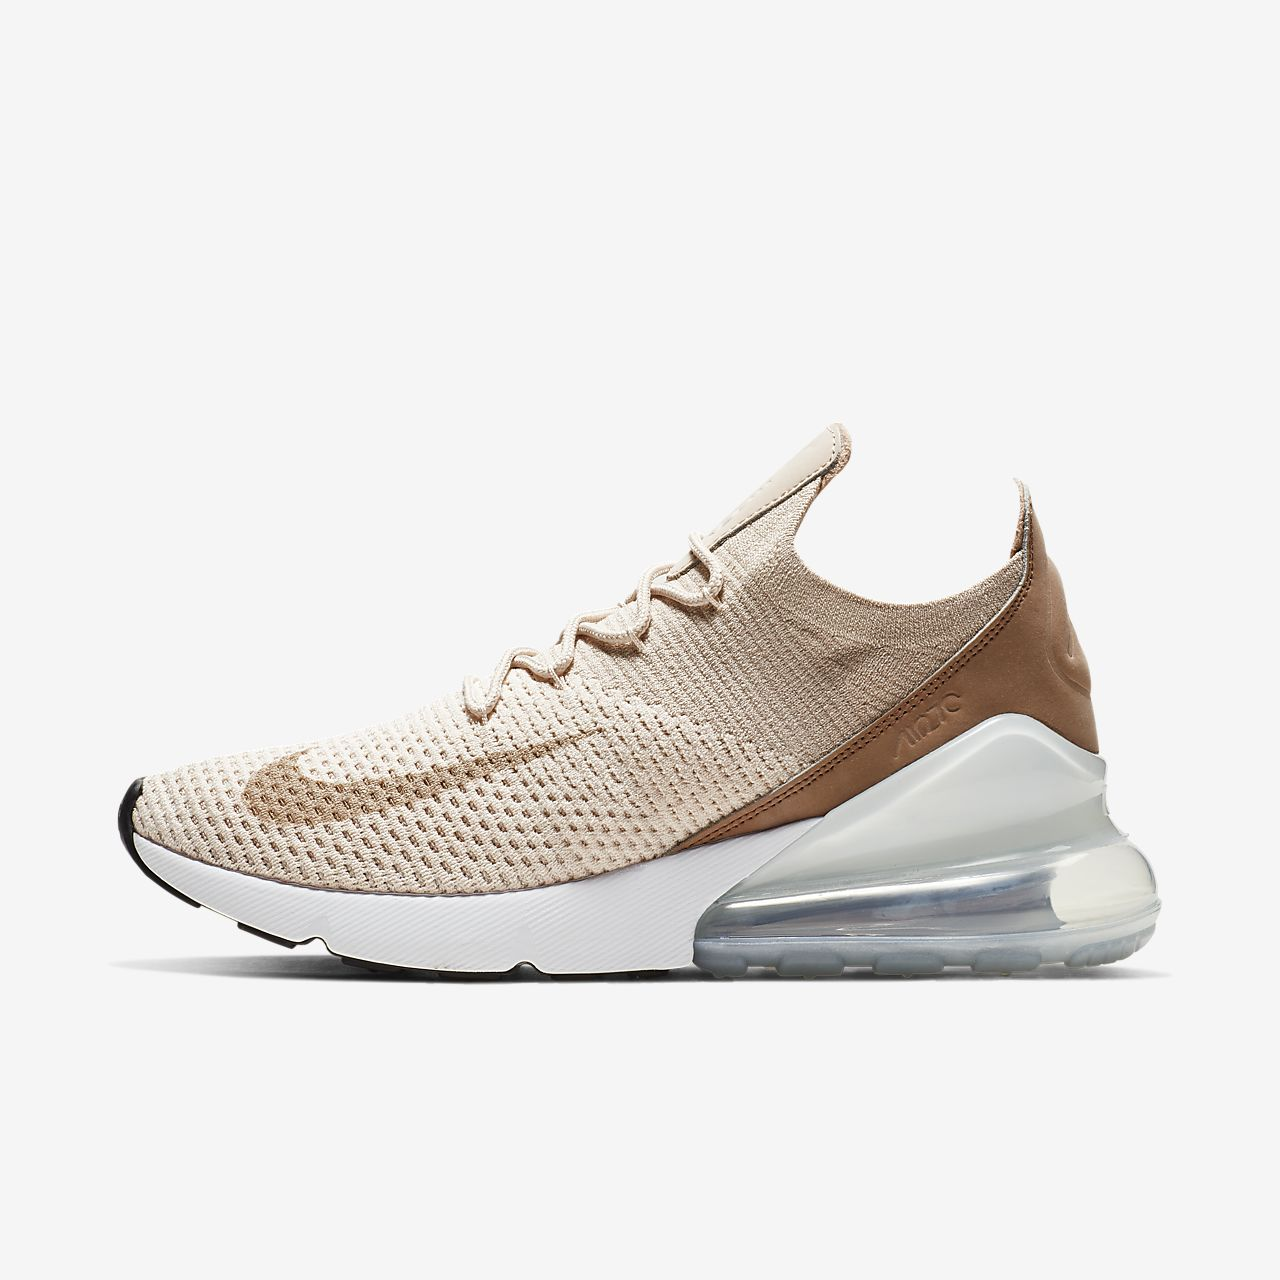 sneakers for cheap 5739f 2a6d0 ... where to buy nike air max 270 flyknit zapatillas mujer 5a5af 0ceb4